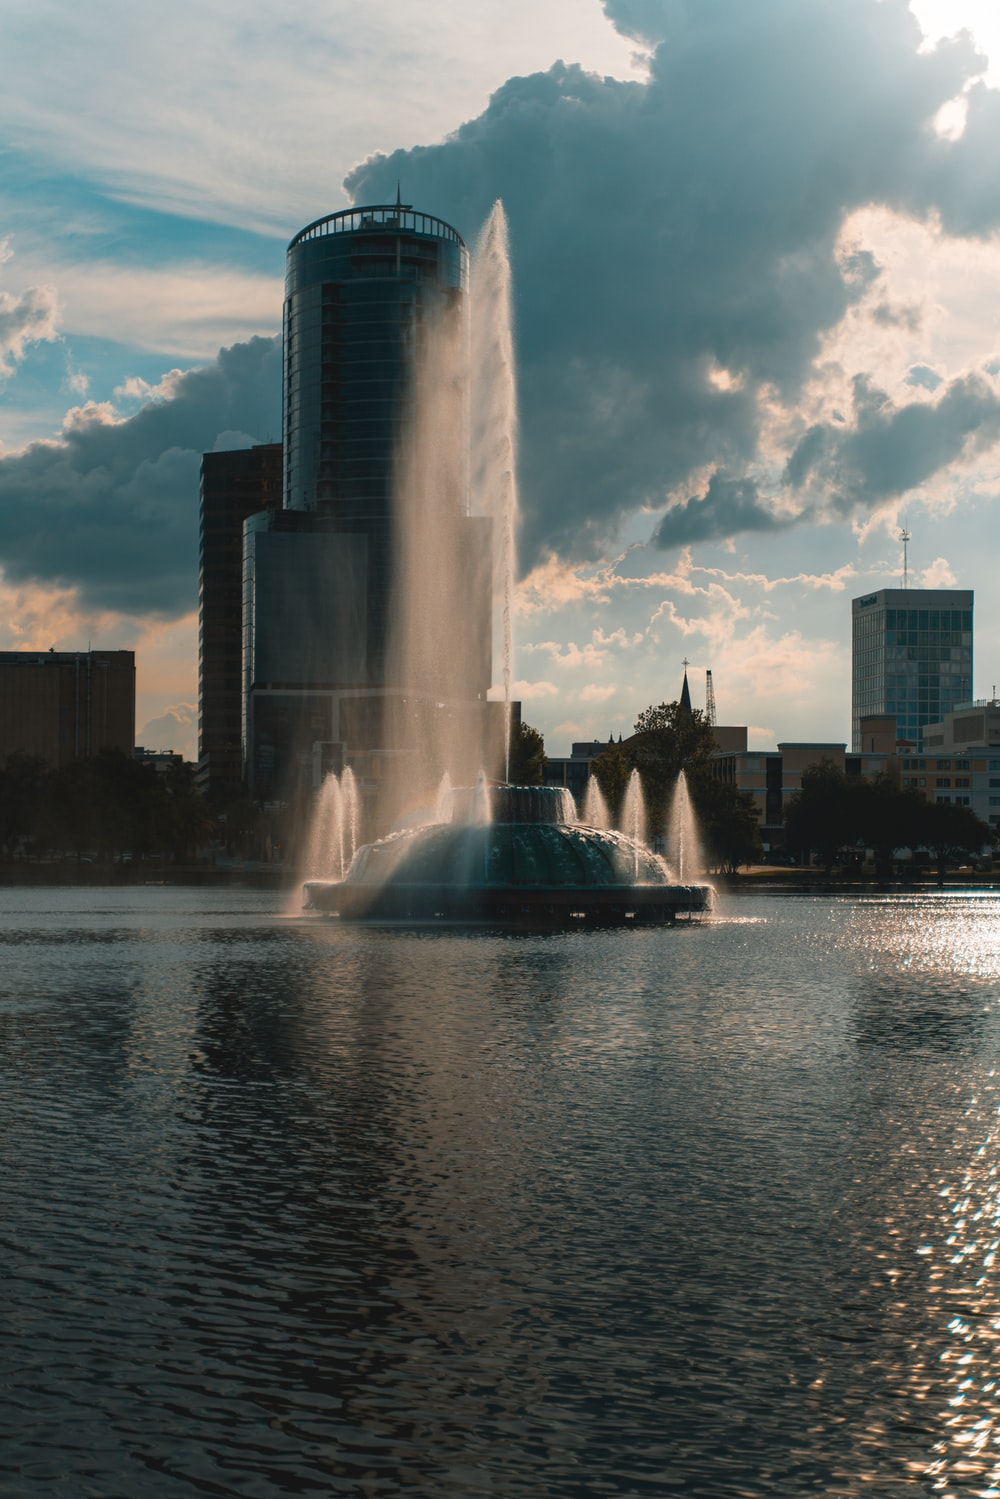 water fountain near city buildings during daytime